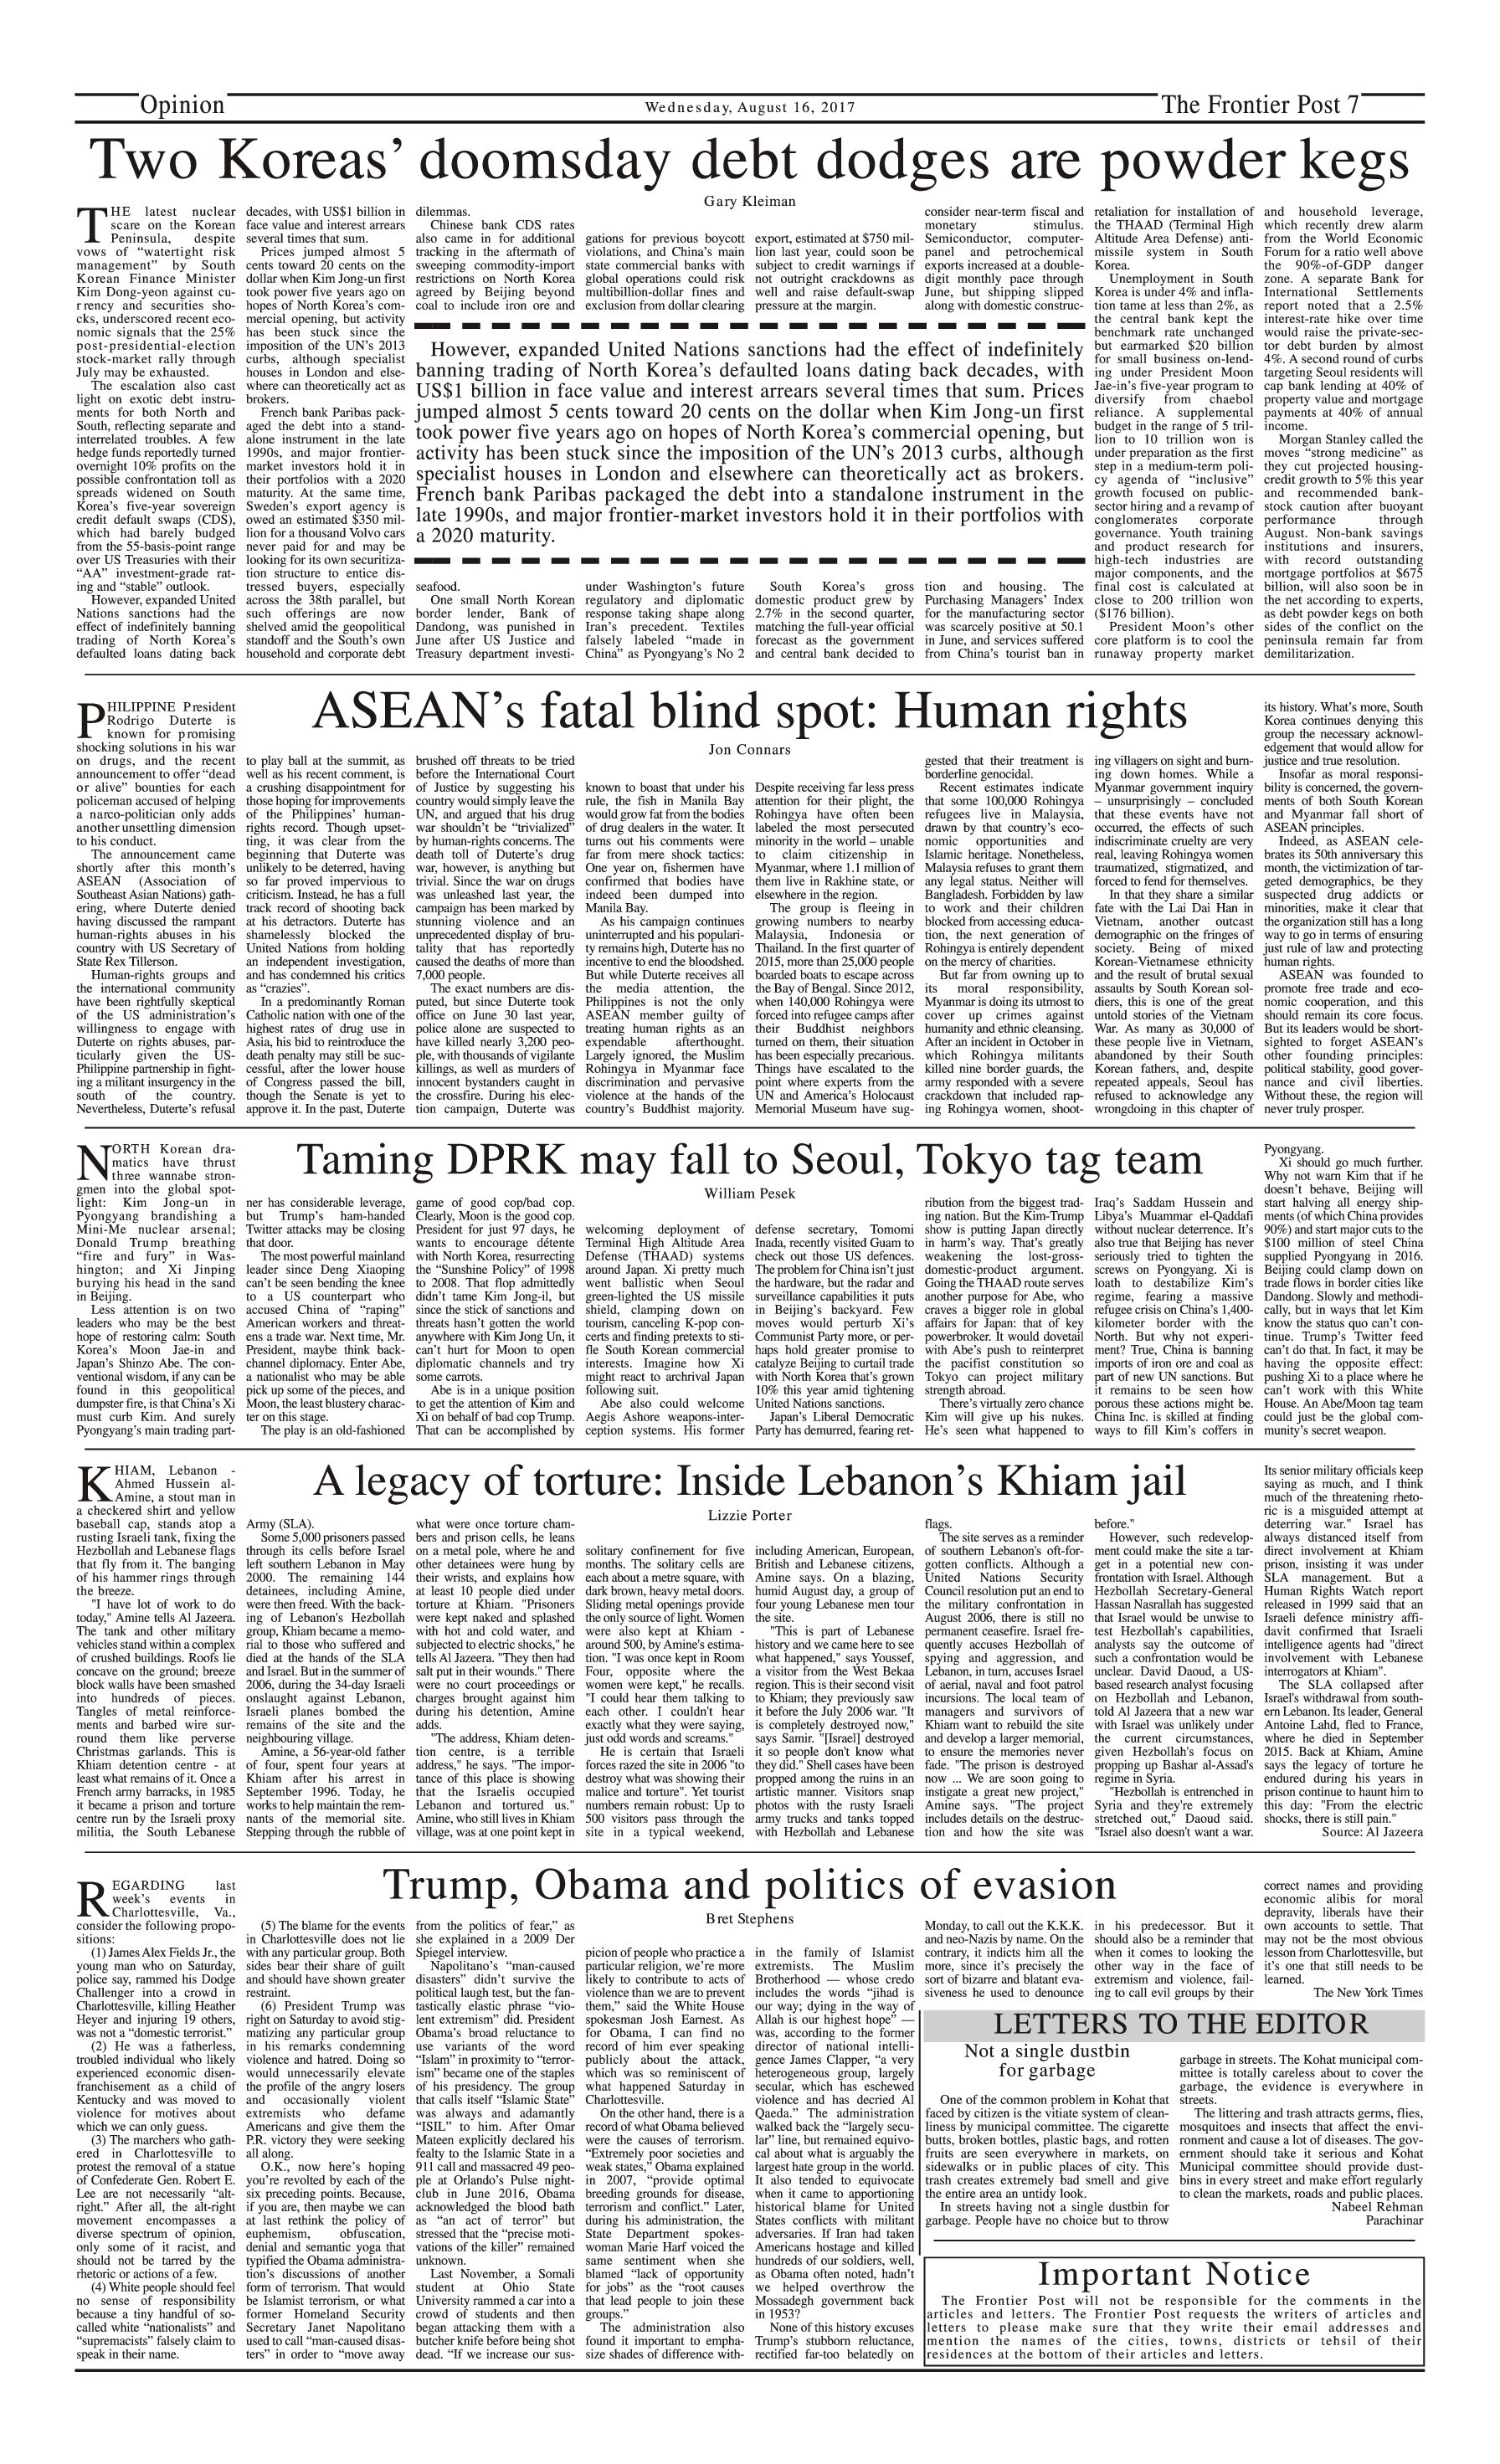 Opinion Page 16